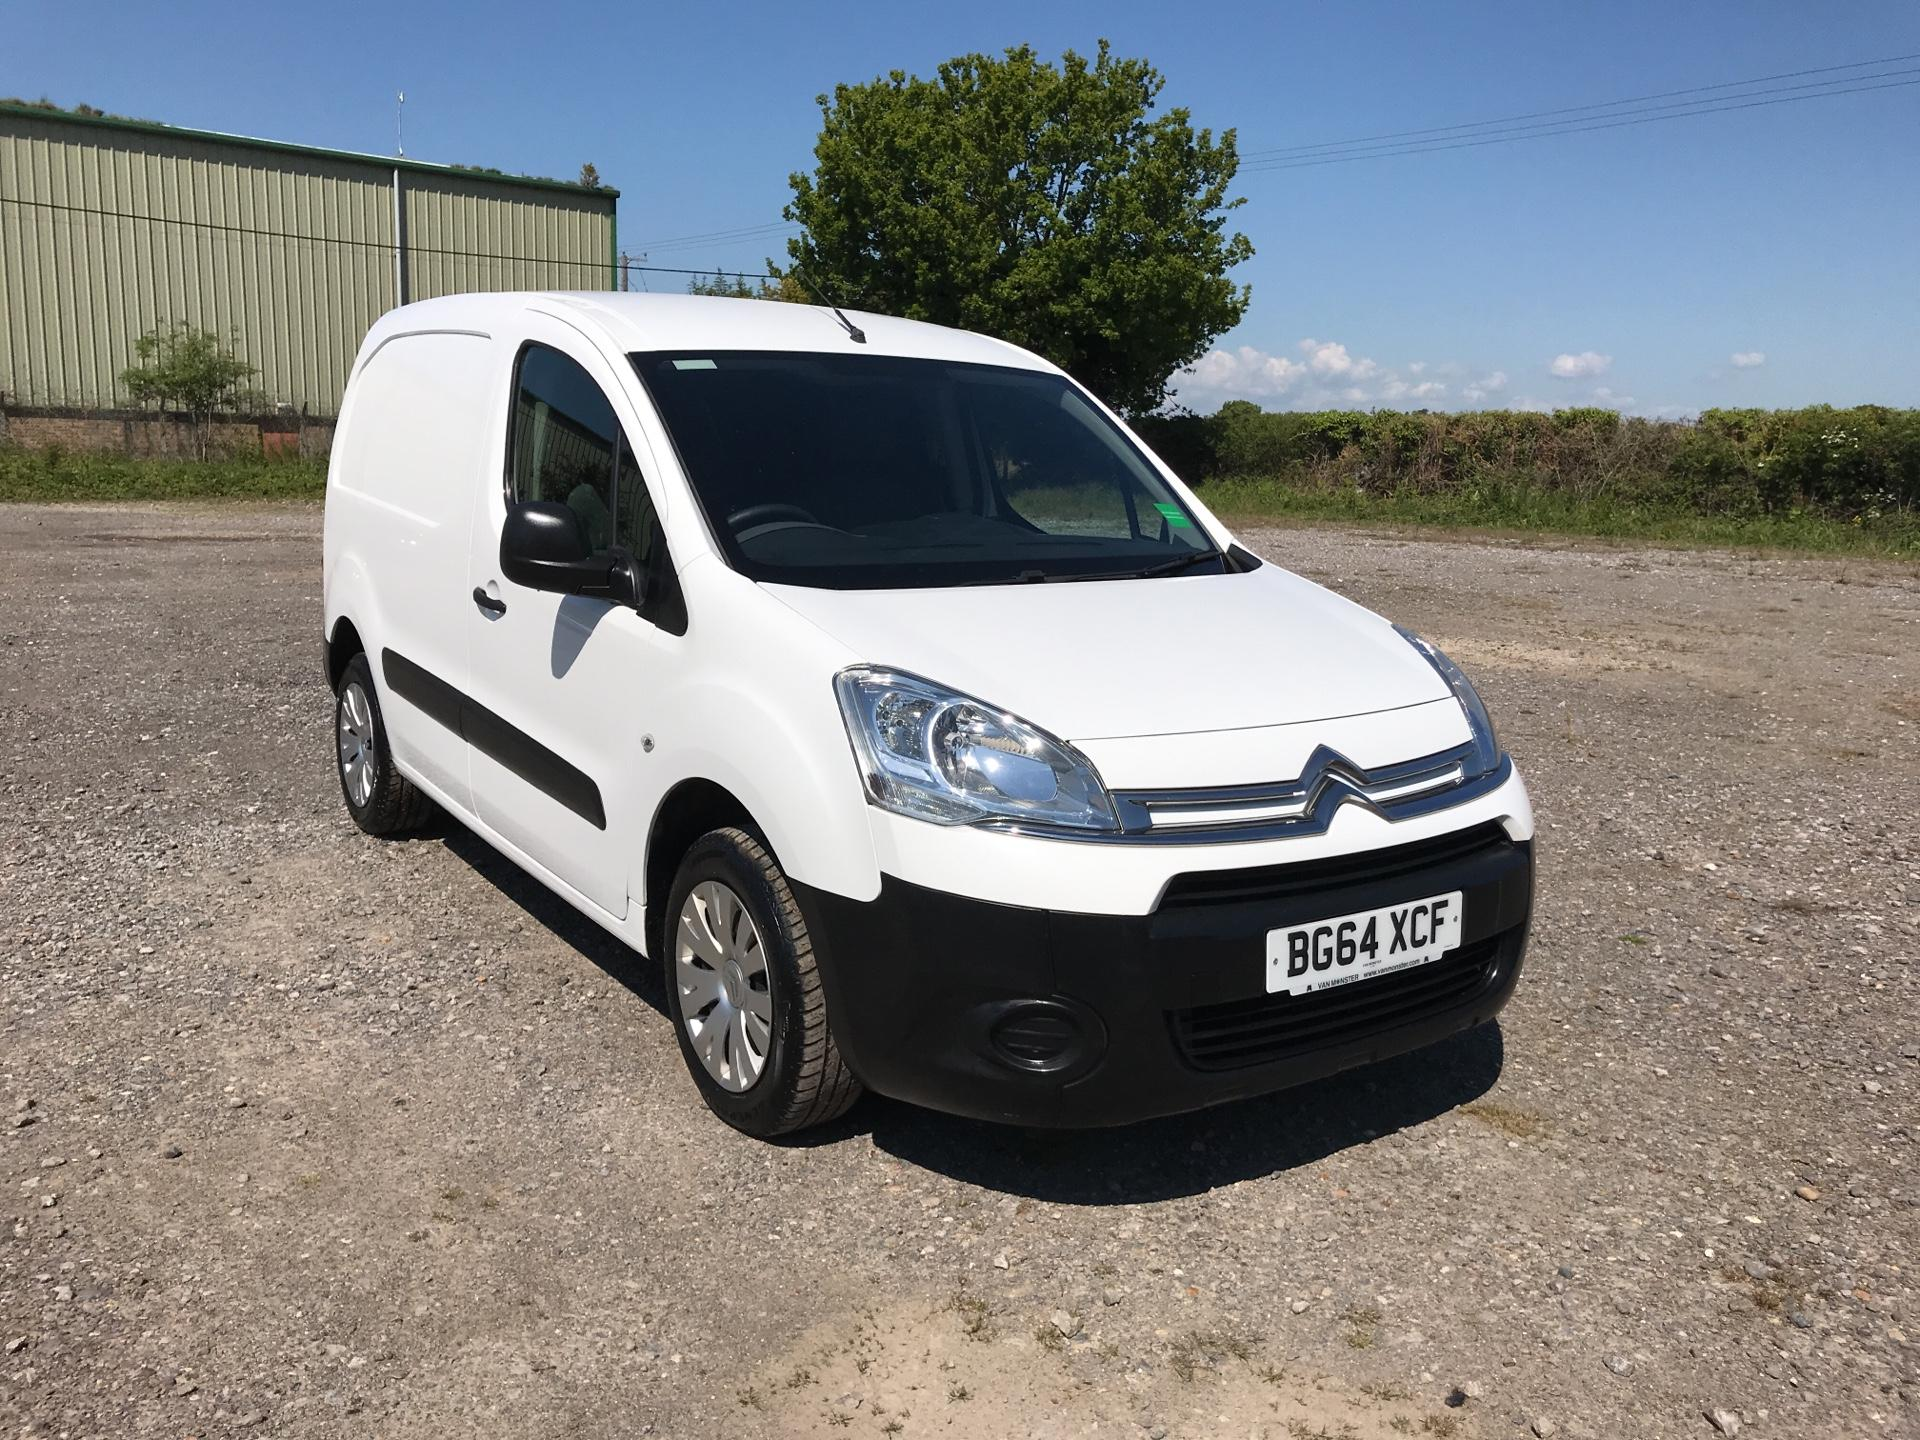 2014 Citroen Berlingo 1.6 Hdi 850Kg X 90Ps [Sld] (BG64XCF)